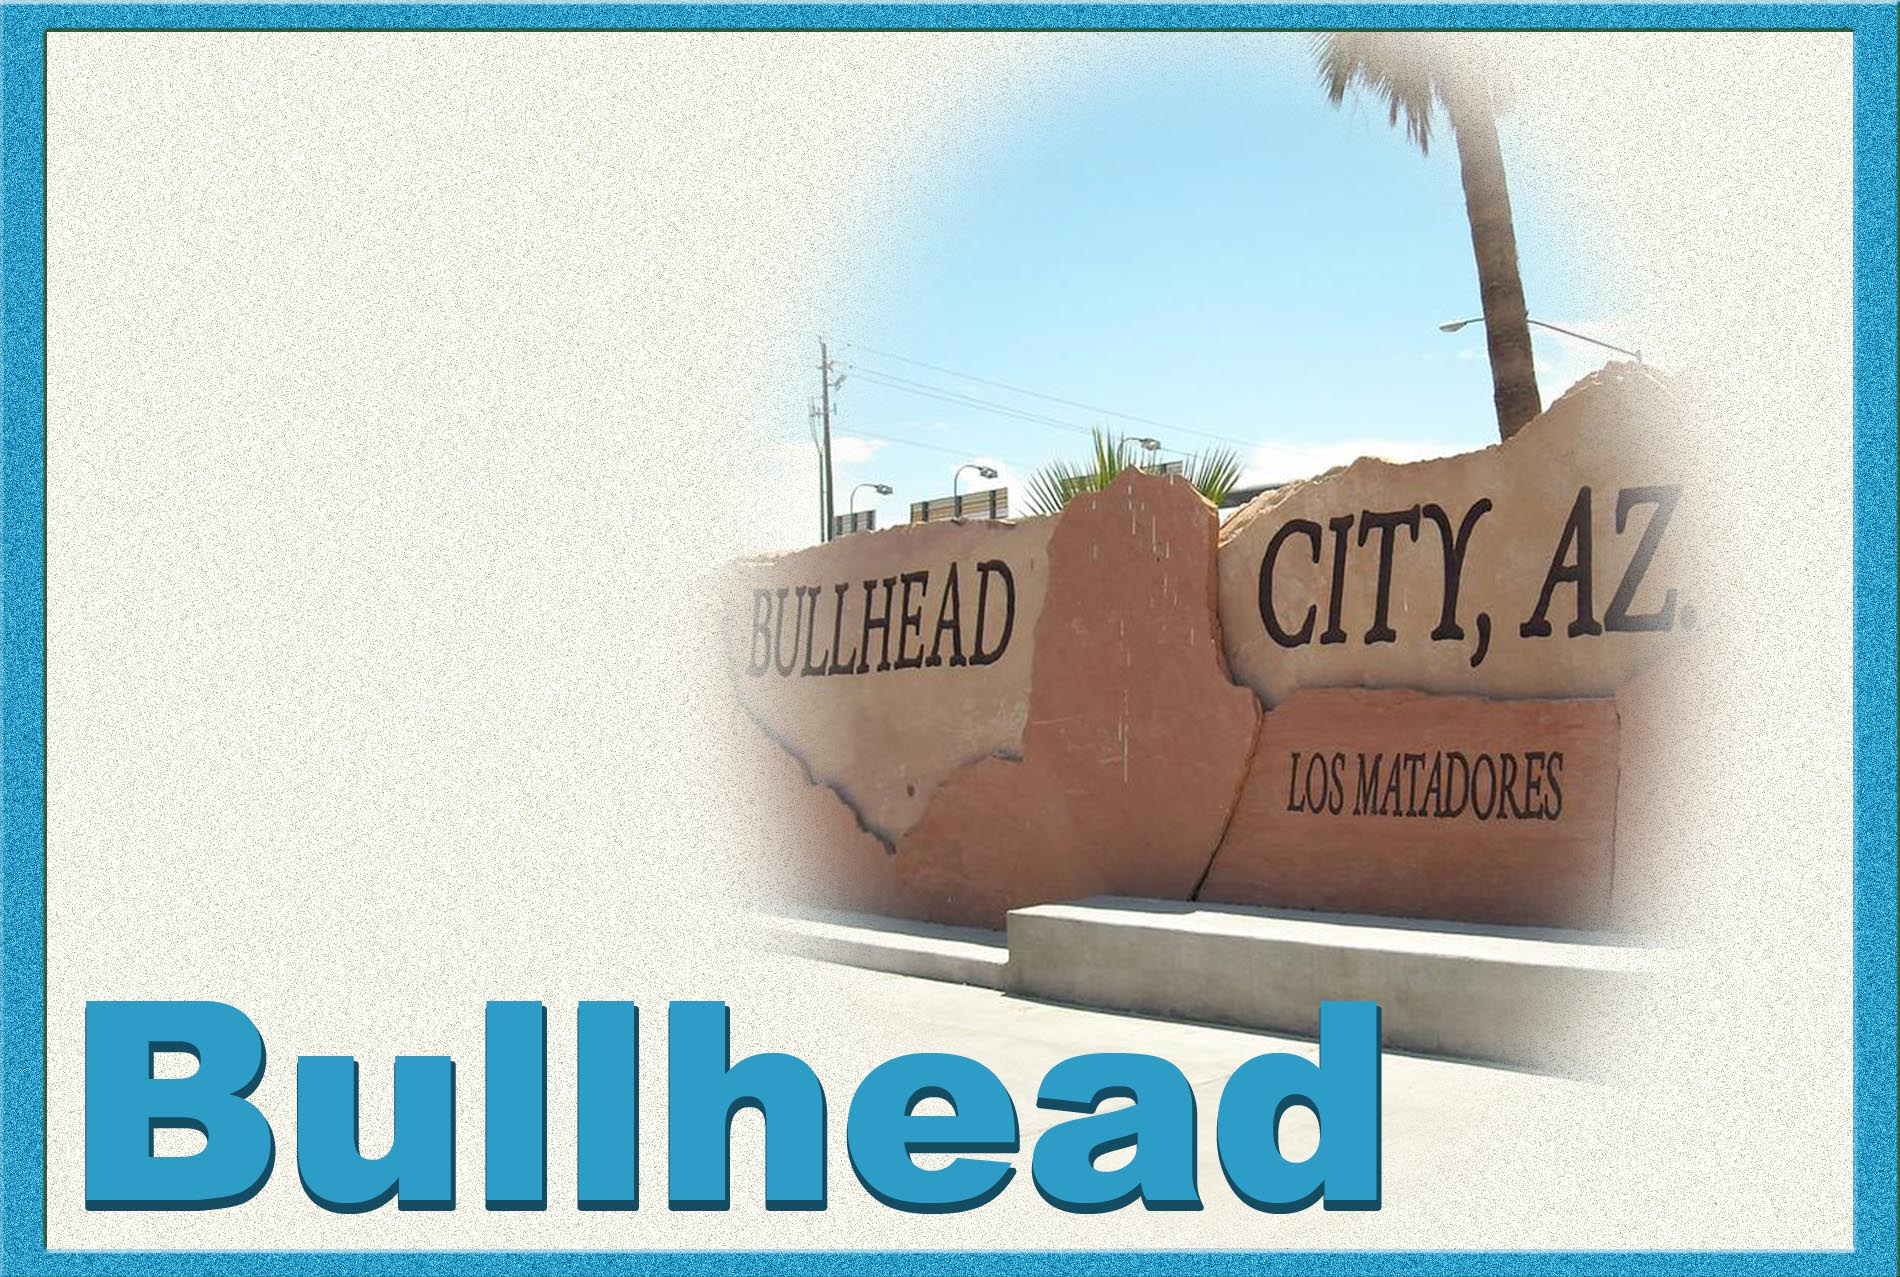 Advertisements, Coupons, Bullhead City, Mohave County